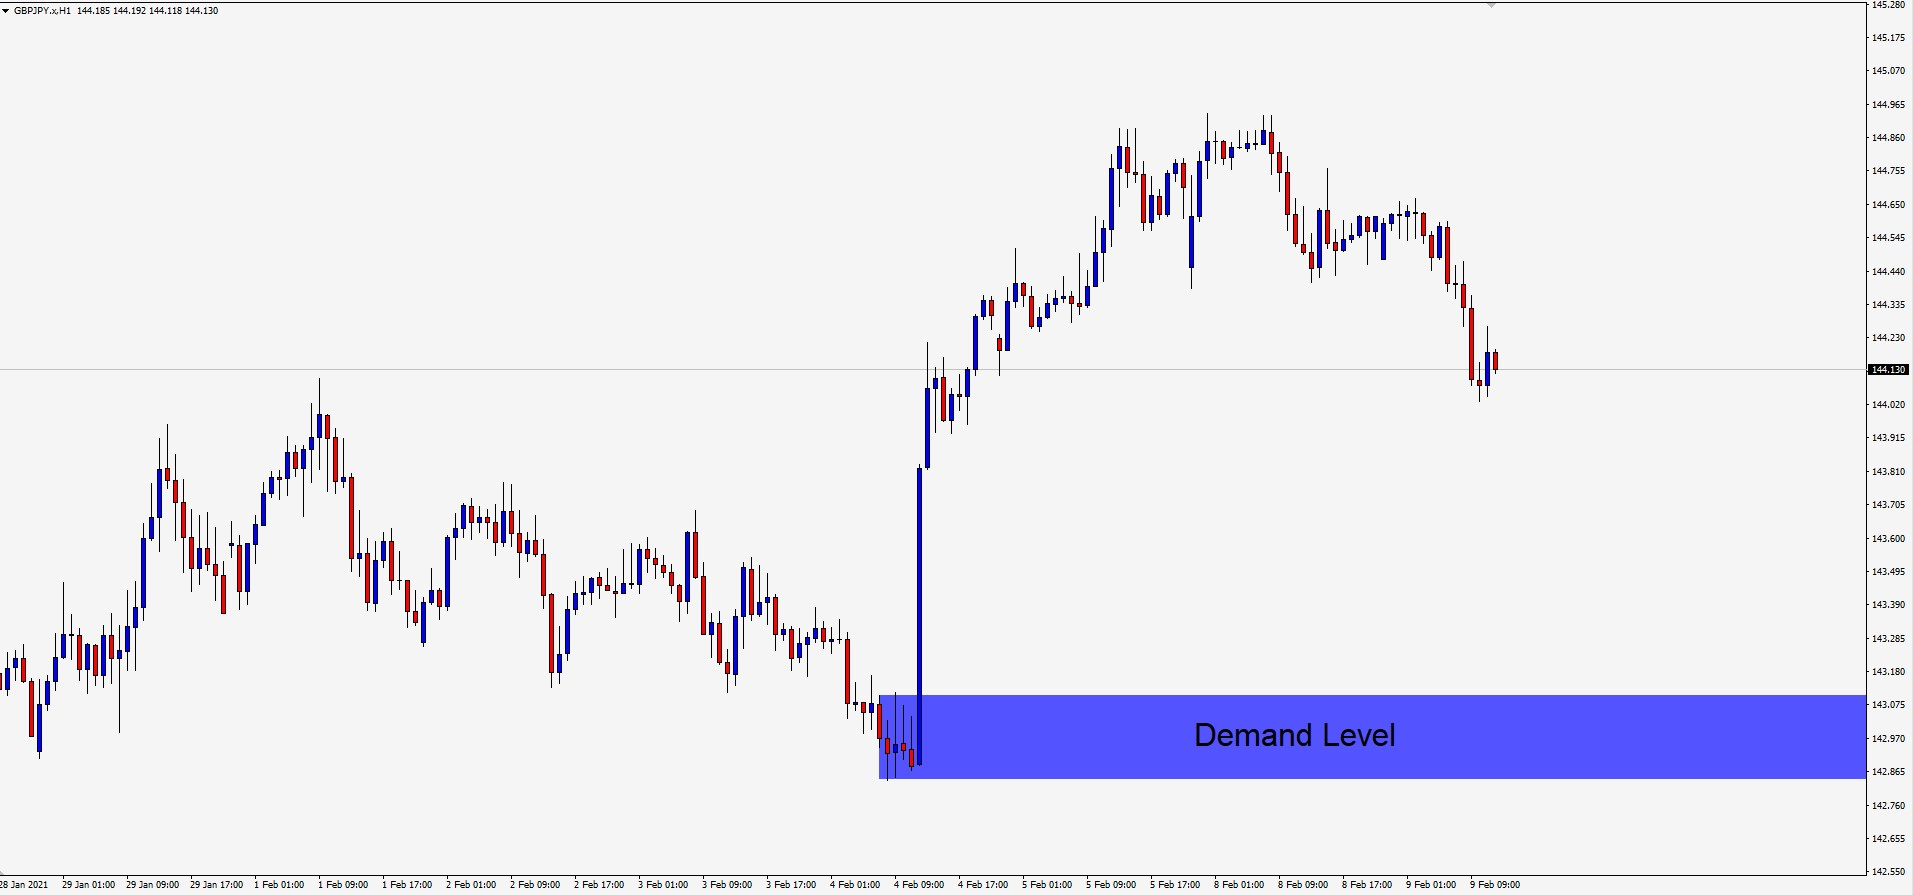 GBP/JPY H1 Supply and Demand